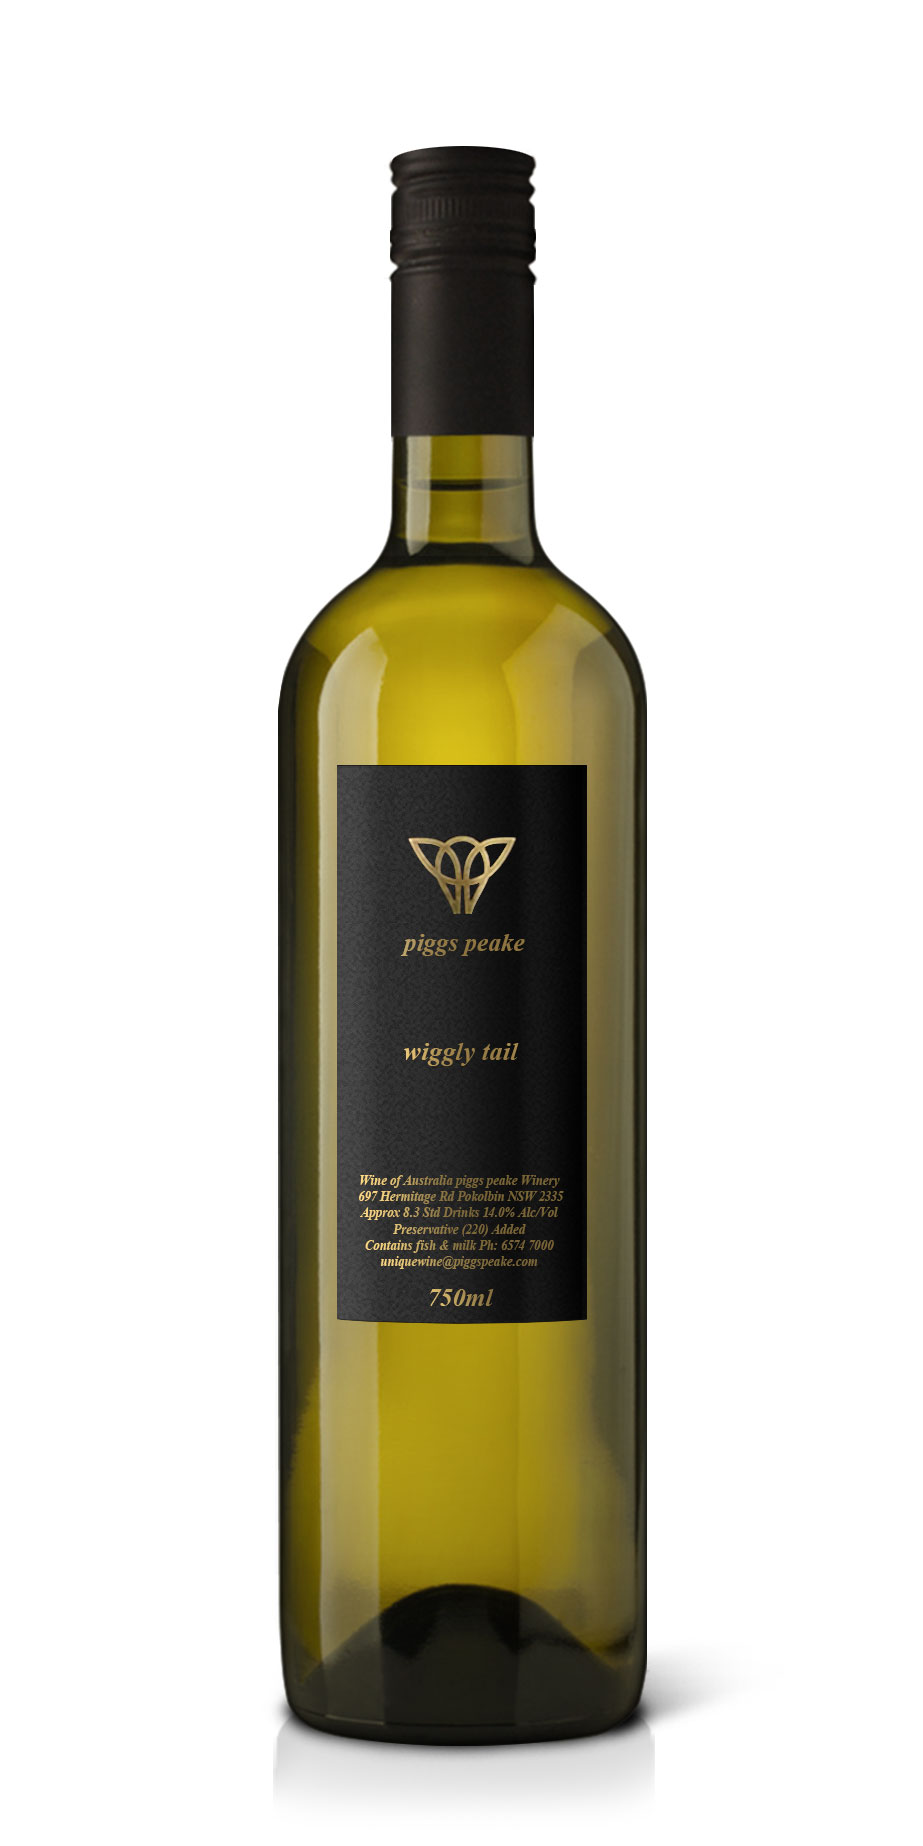 Wiggly Tail - Dry White Wine by piggs peake